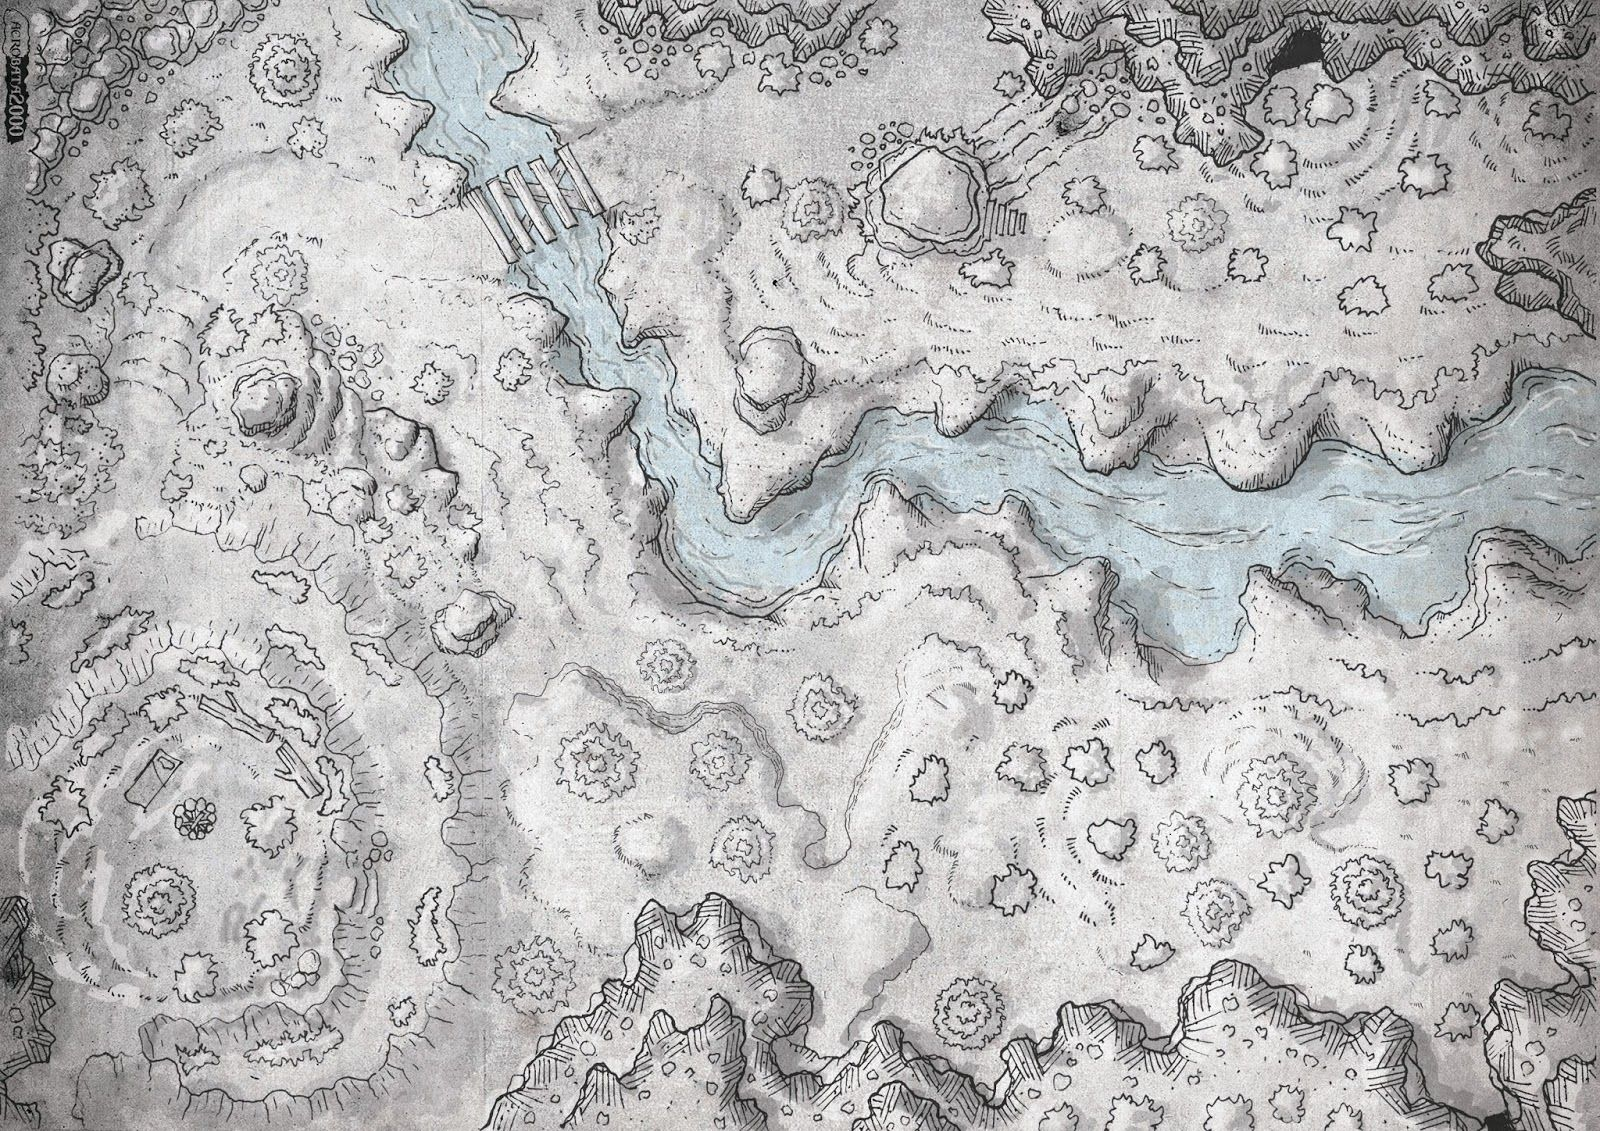 Pin by Bailey Poletti on Maps in 2019 | Fantasy map maker, Fantasy